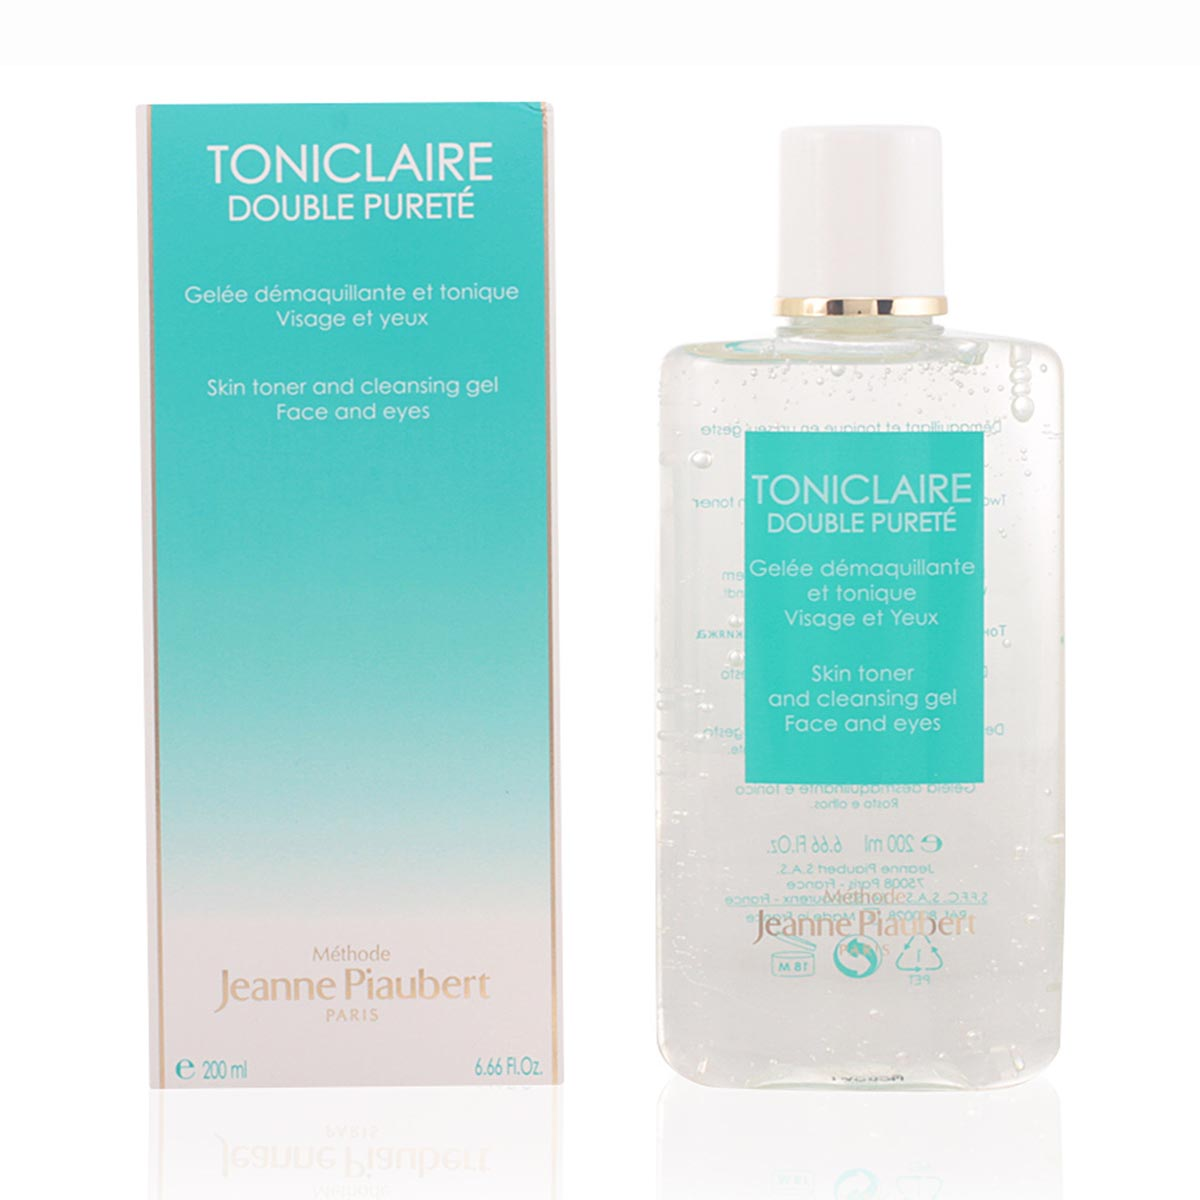 Jeanne piaubert toniclaire double purete face and eyes cleansing gel 200ml